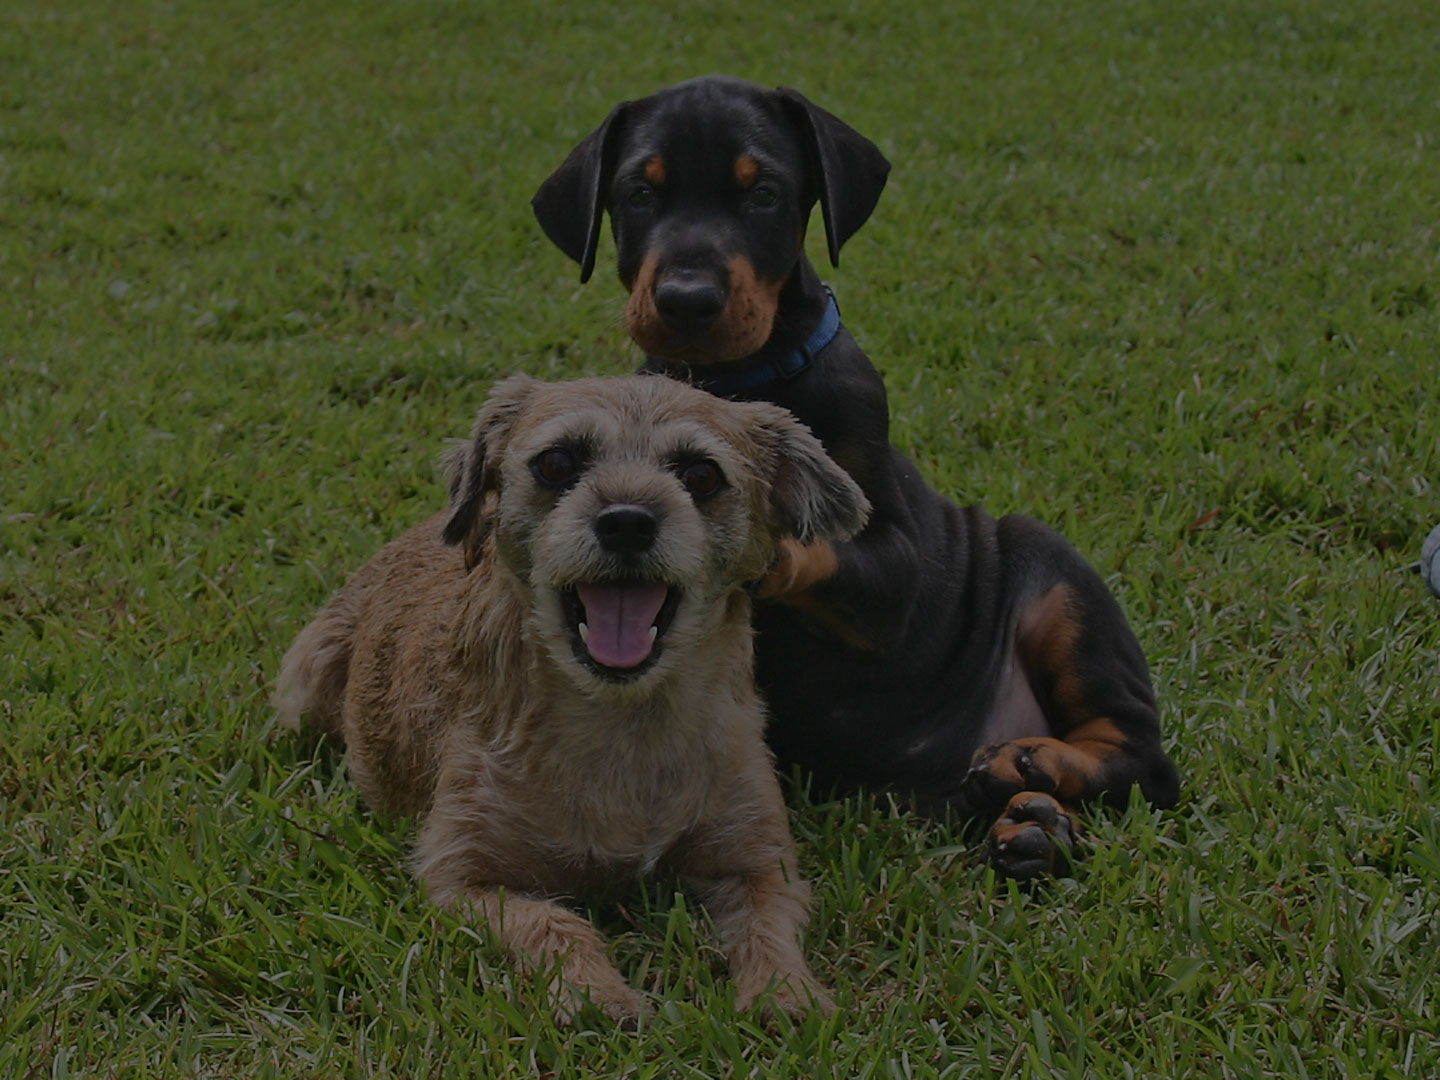 puppies facing the camera sitting on the grass.